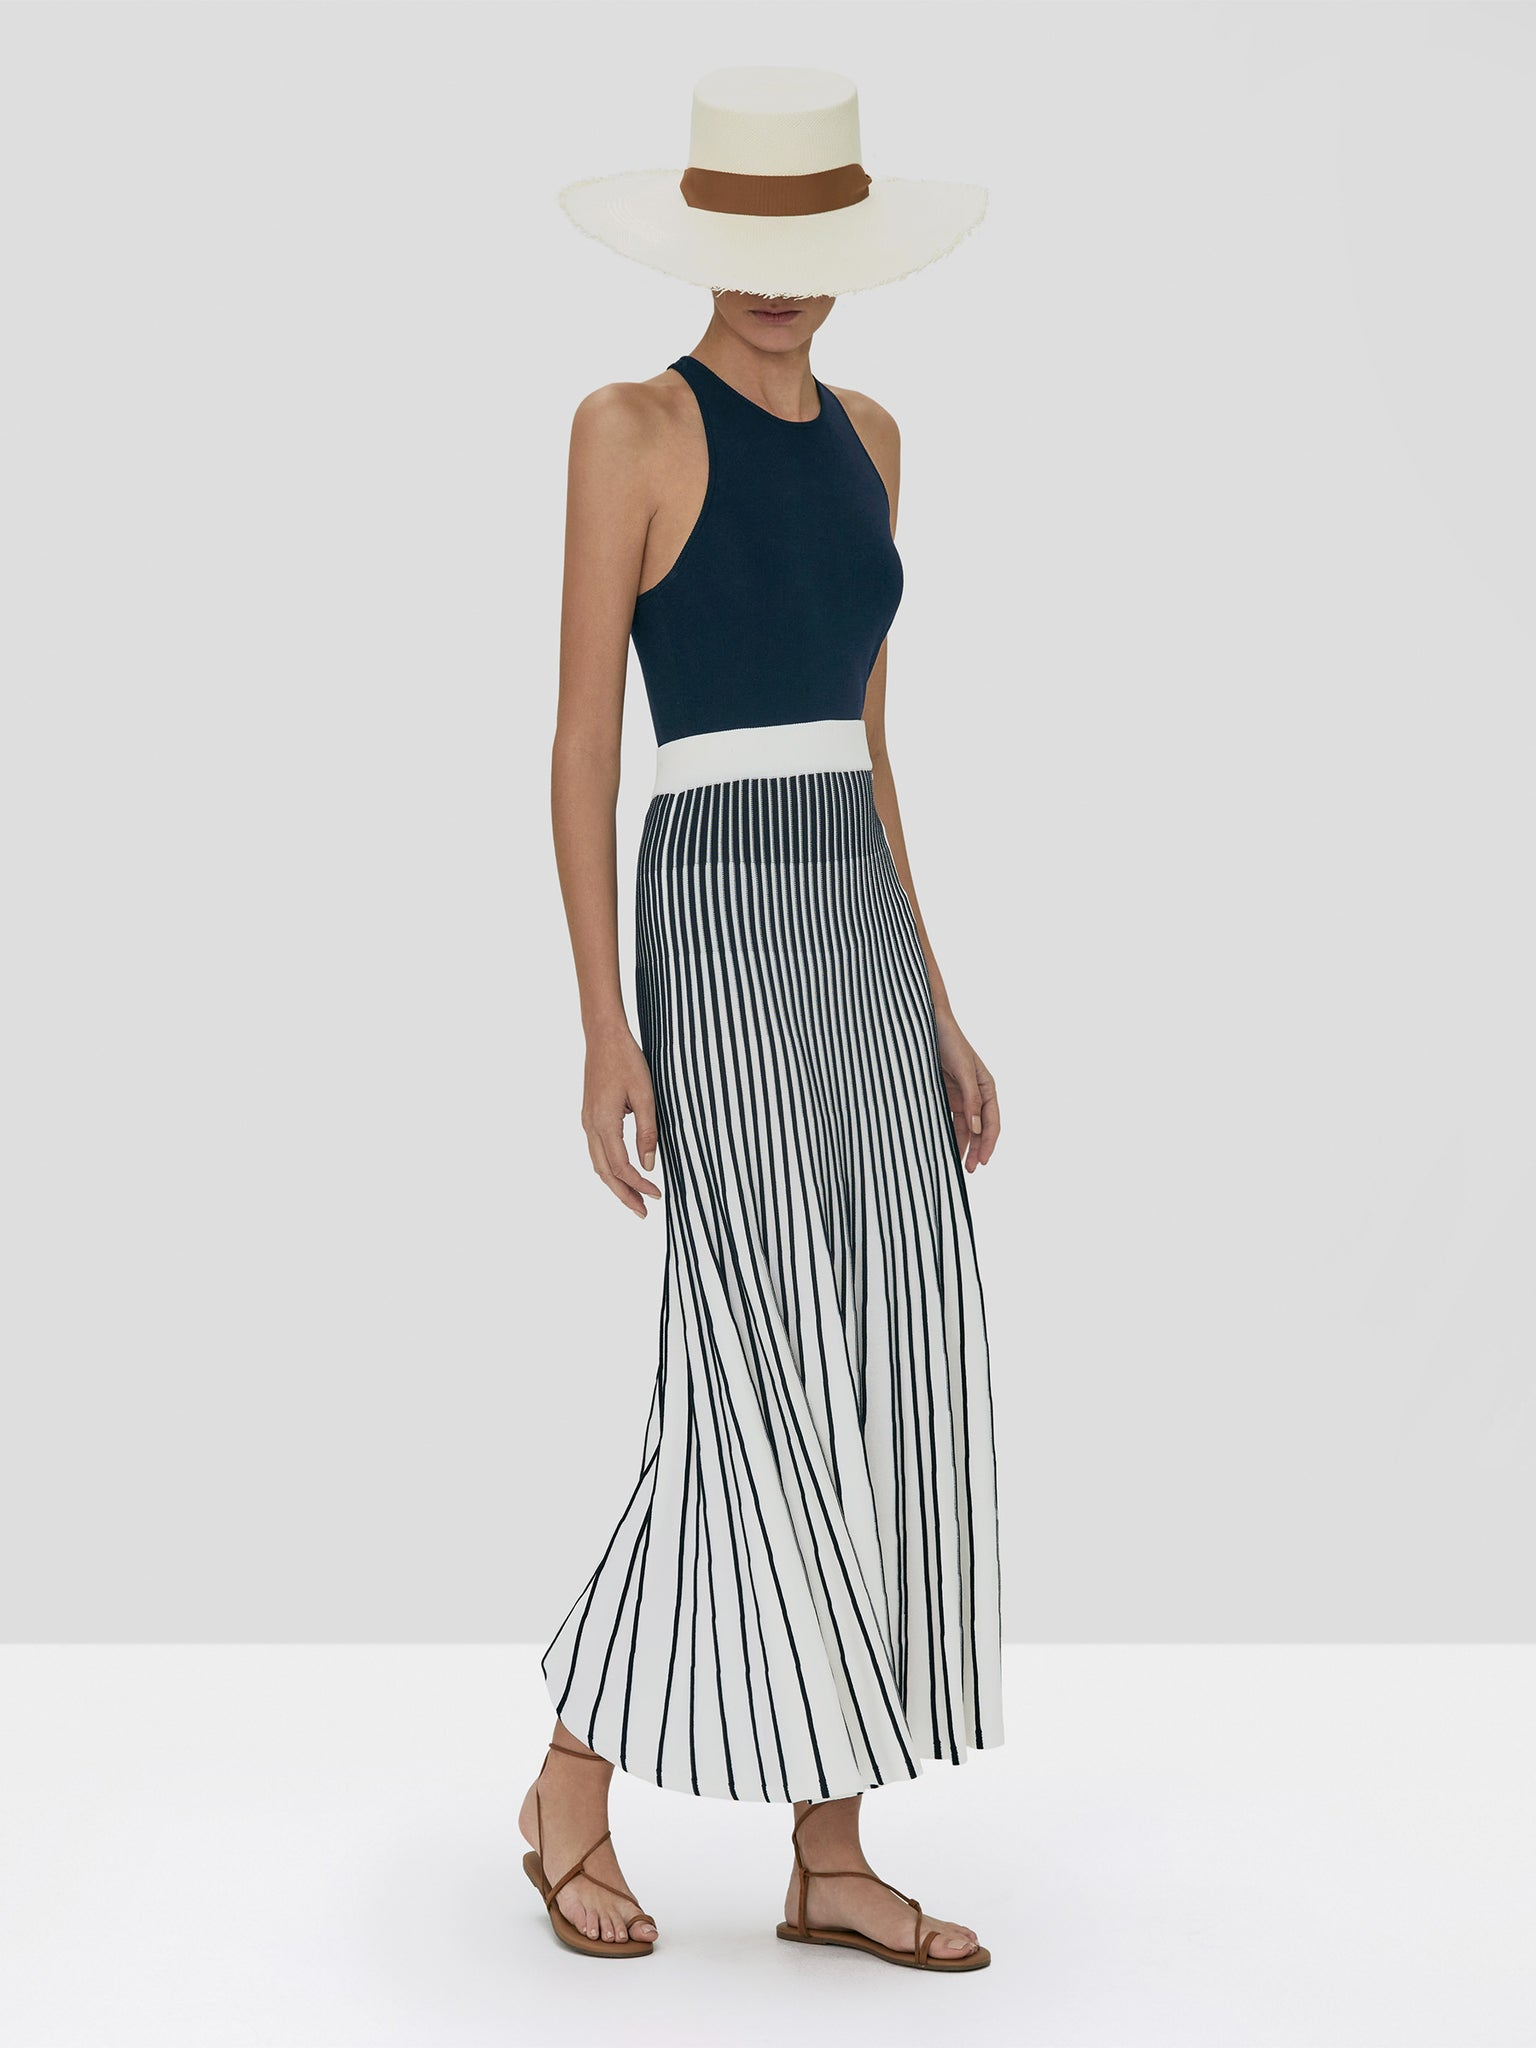 Alexis Zeni Top in Navy and Vani Skirt in Navy/White Stripes from Spring Summer 2020 Collection